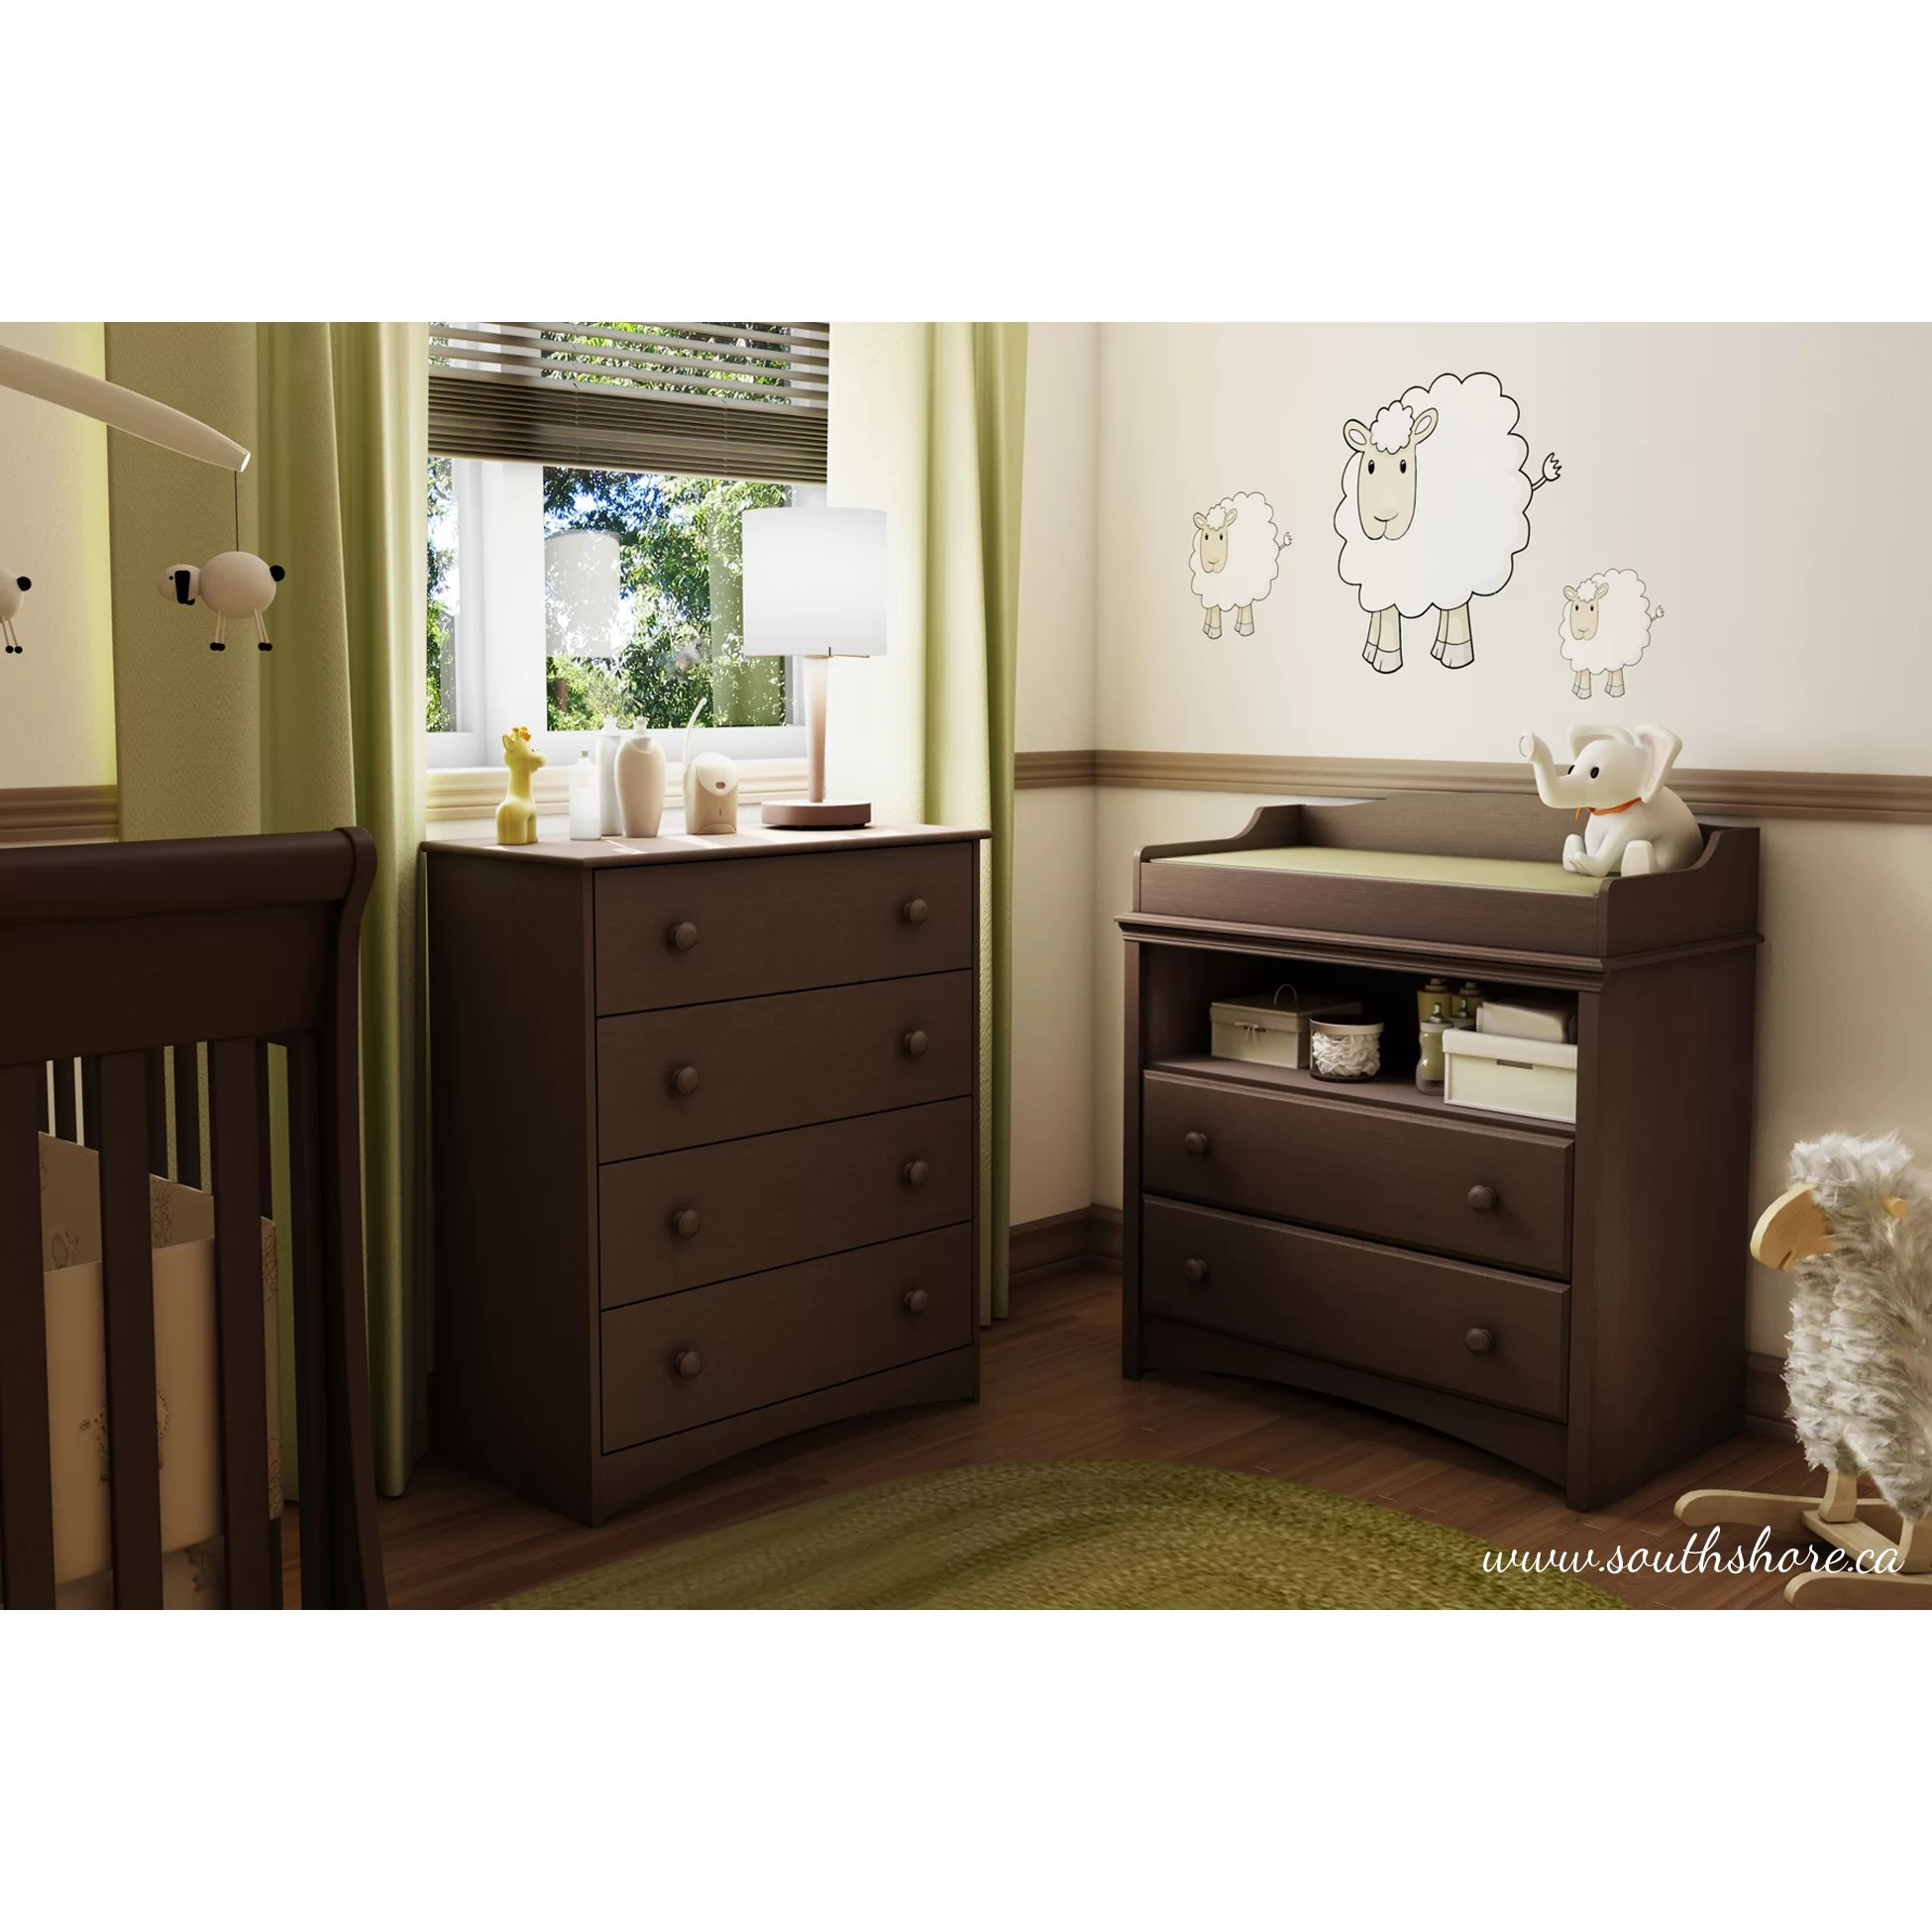 South Shore Heavenly Changing Table and Chest Set  Reviews  Wayfair